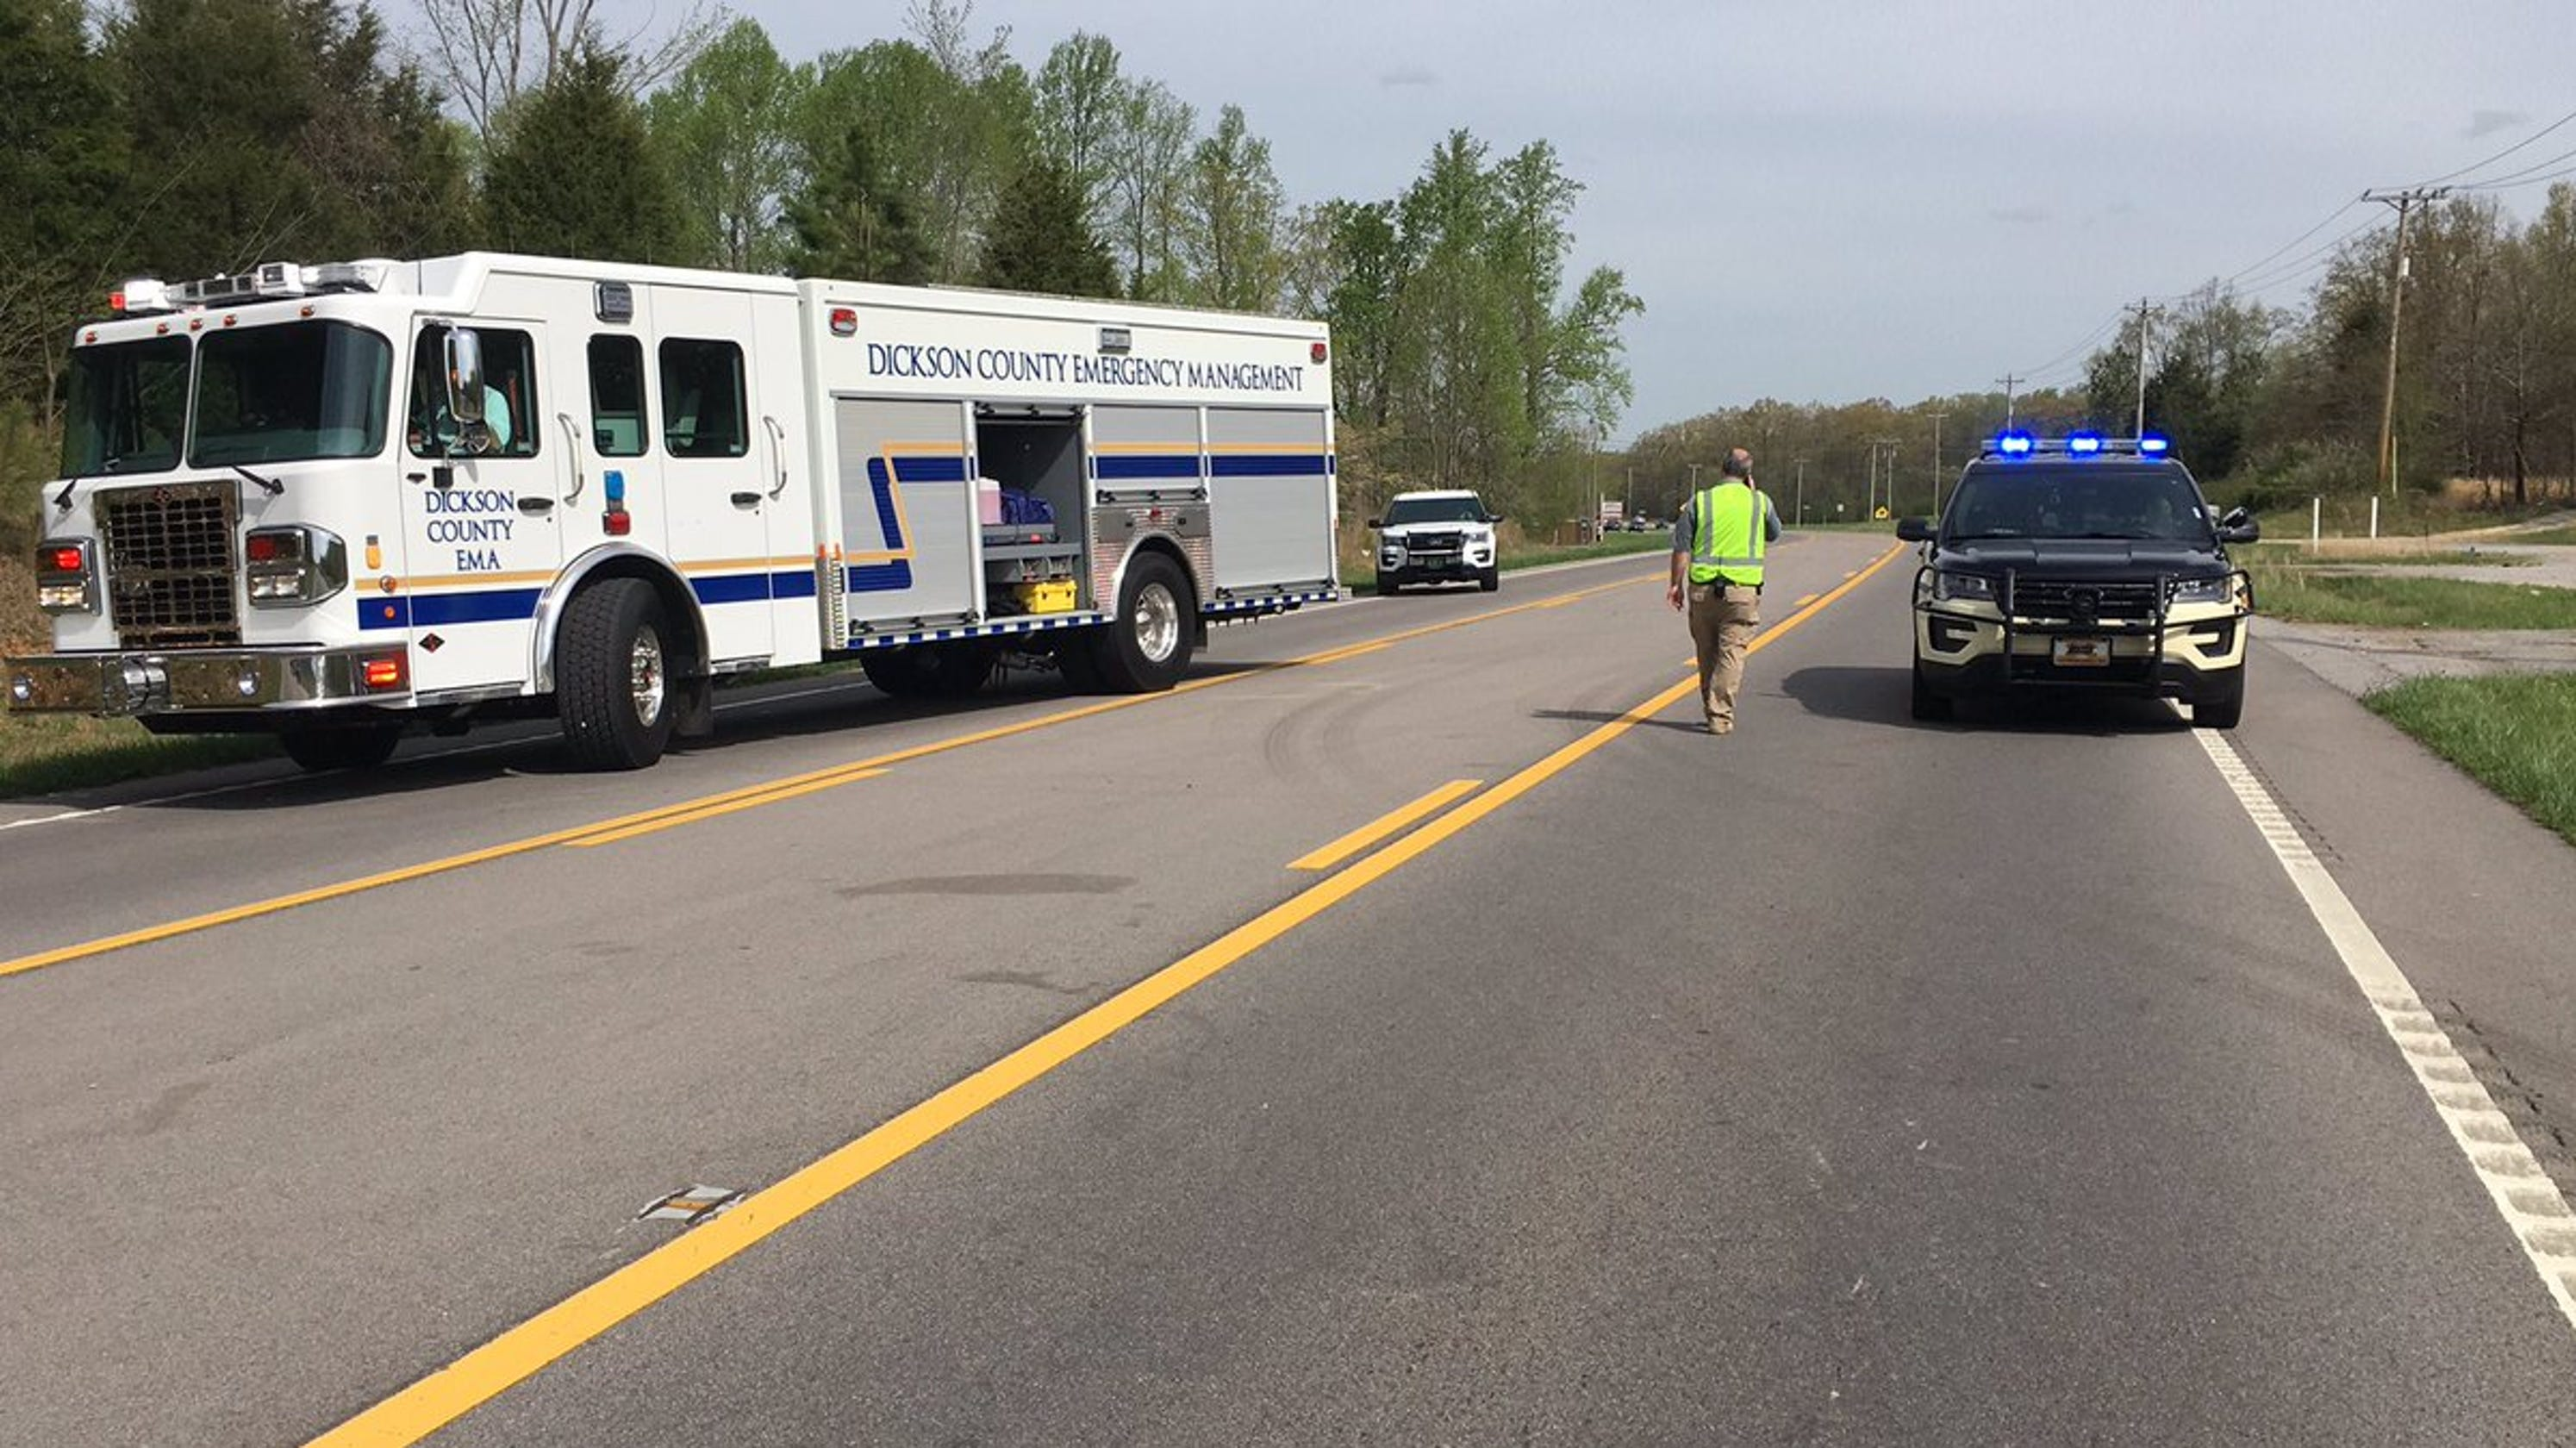 Two infants survive head-on, fatal crash in Dickson Co